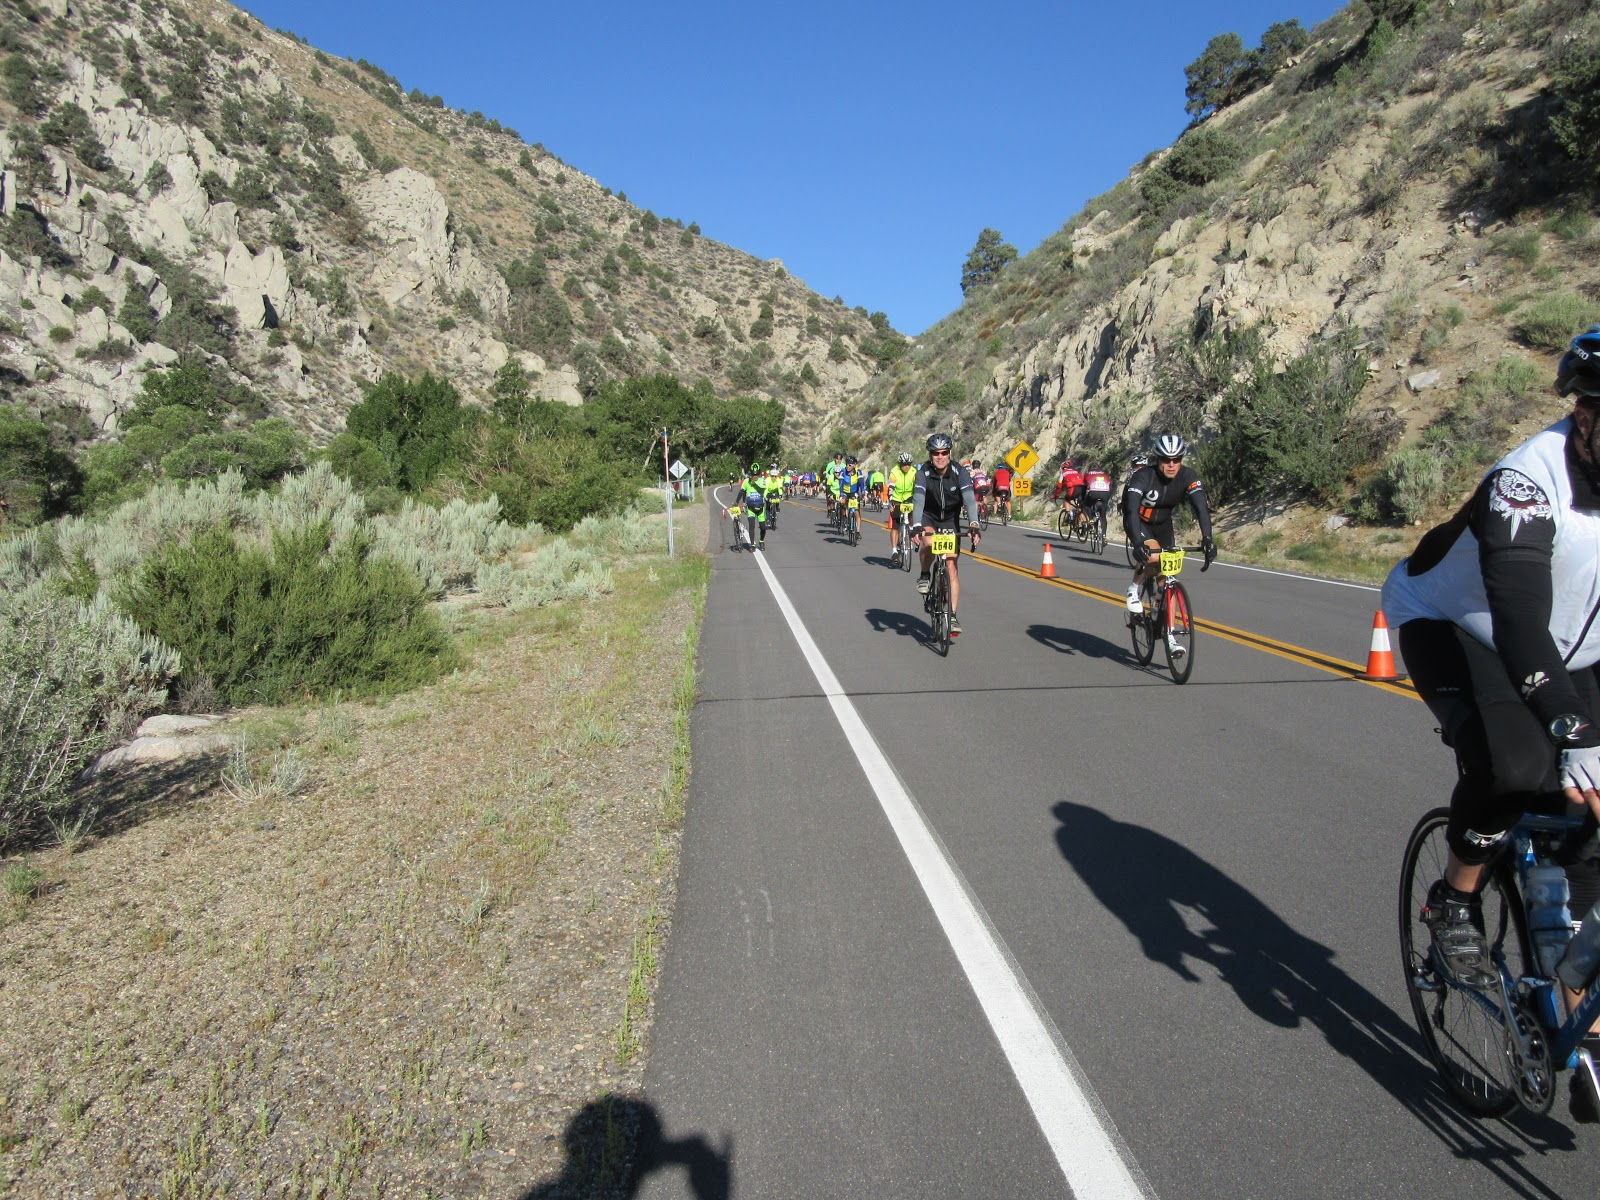 Climbing Monitor Pass East  by bicycle - Death Ride cyclists descending through canyon